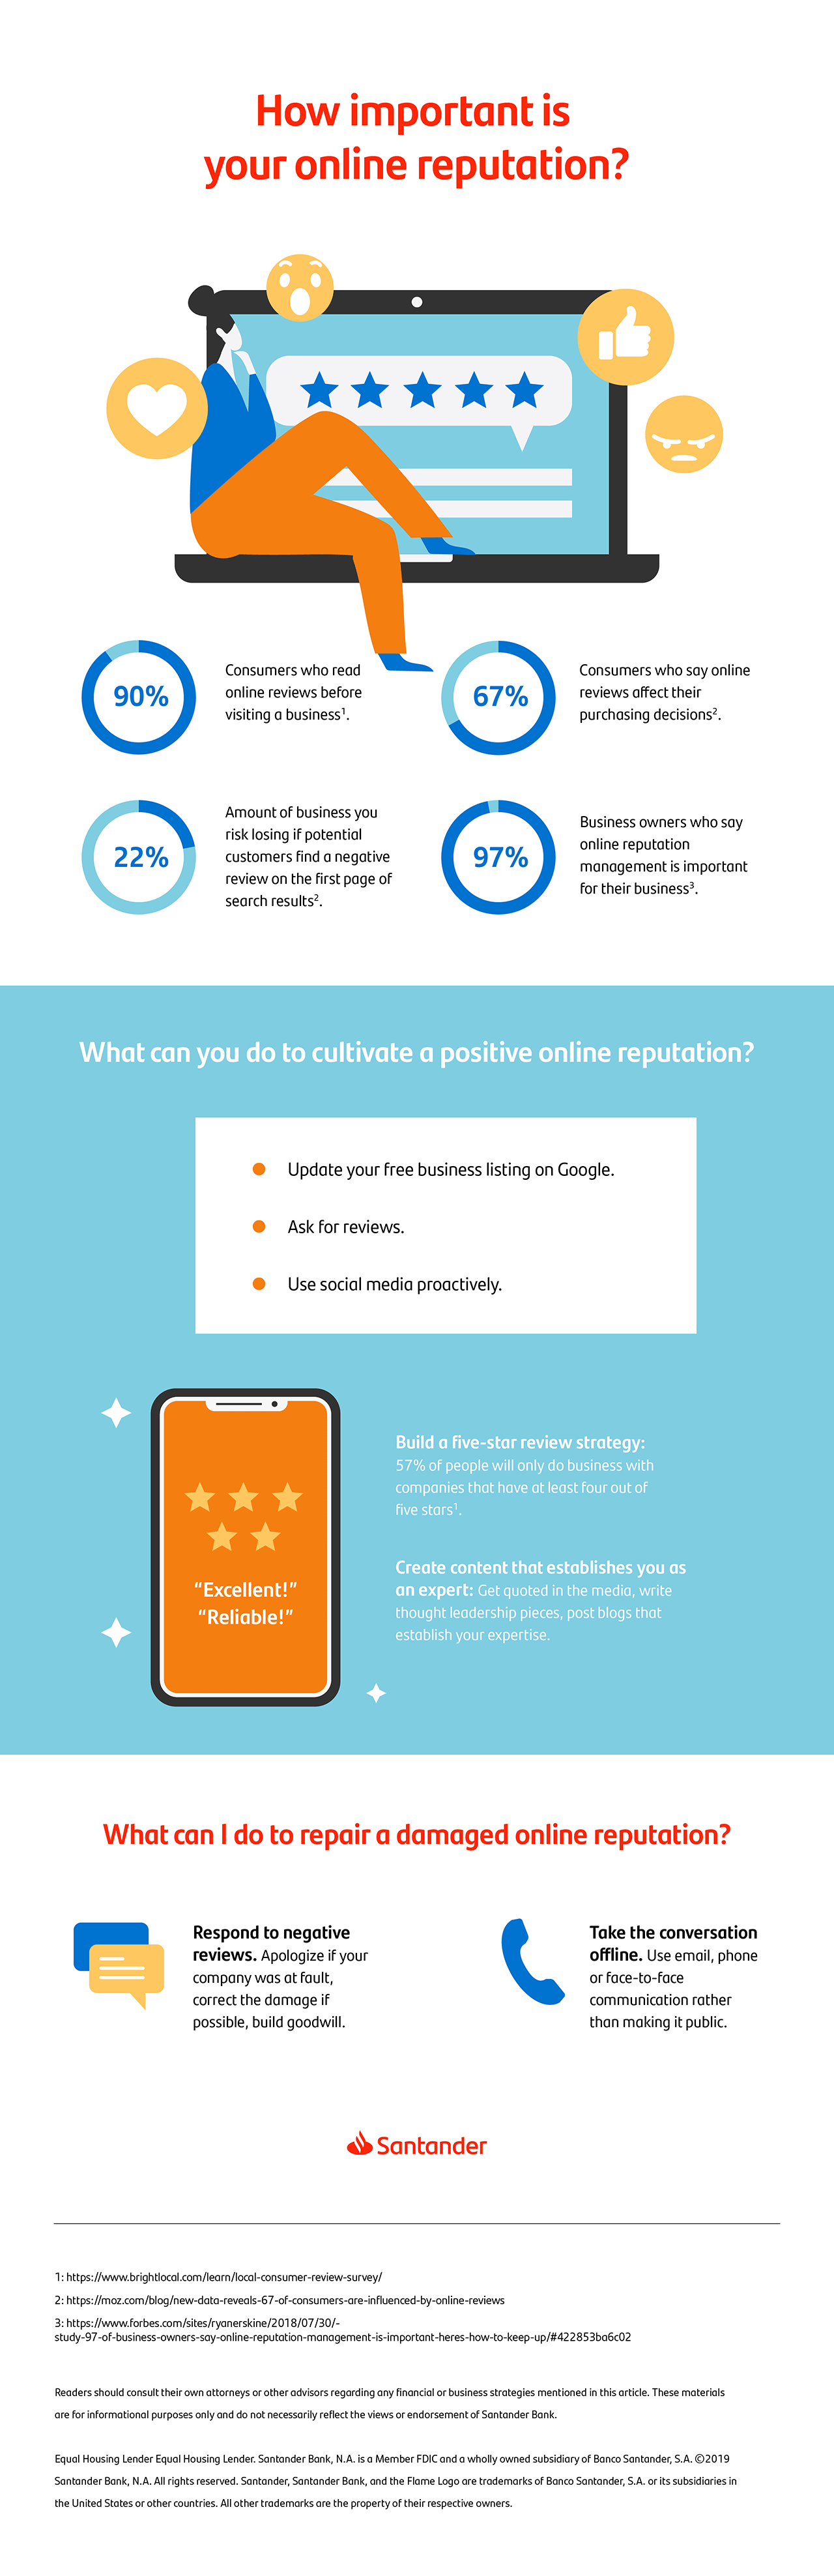 How does your online reputation affect your small business